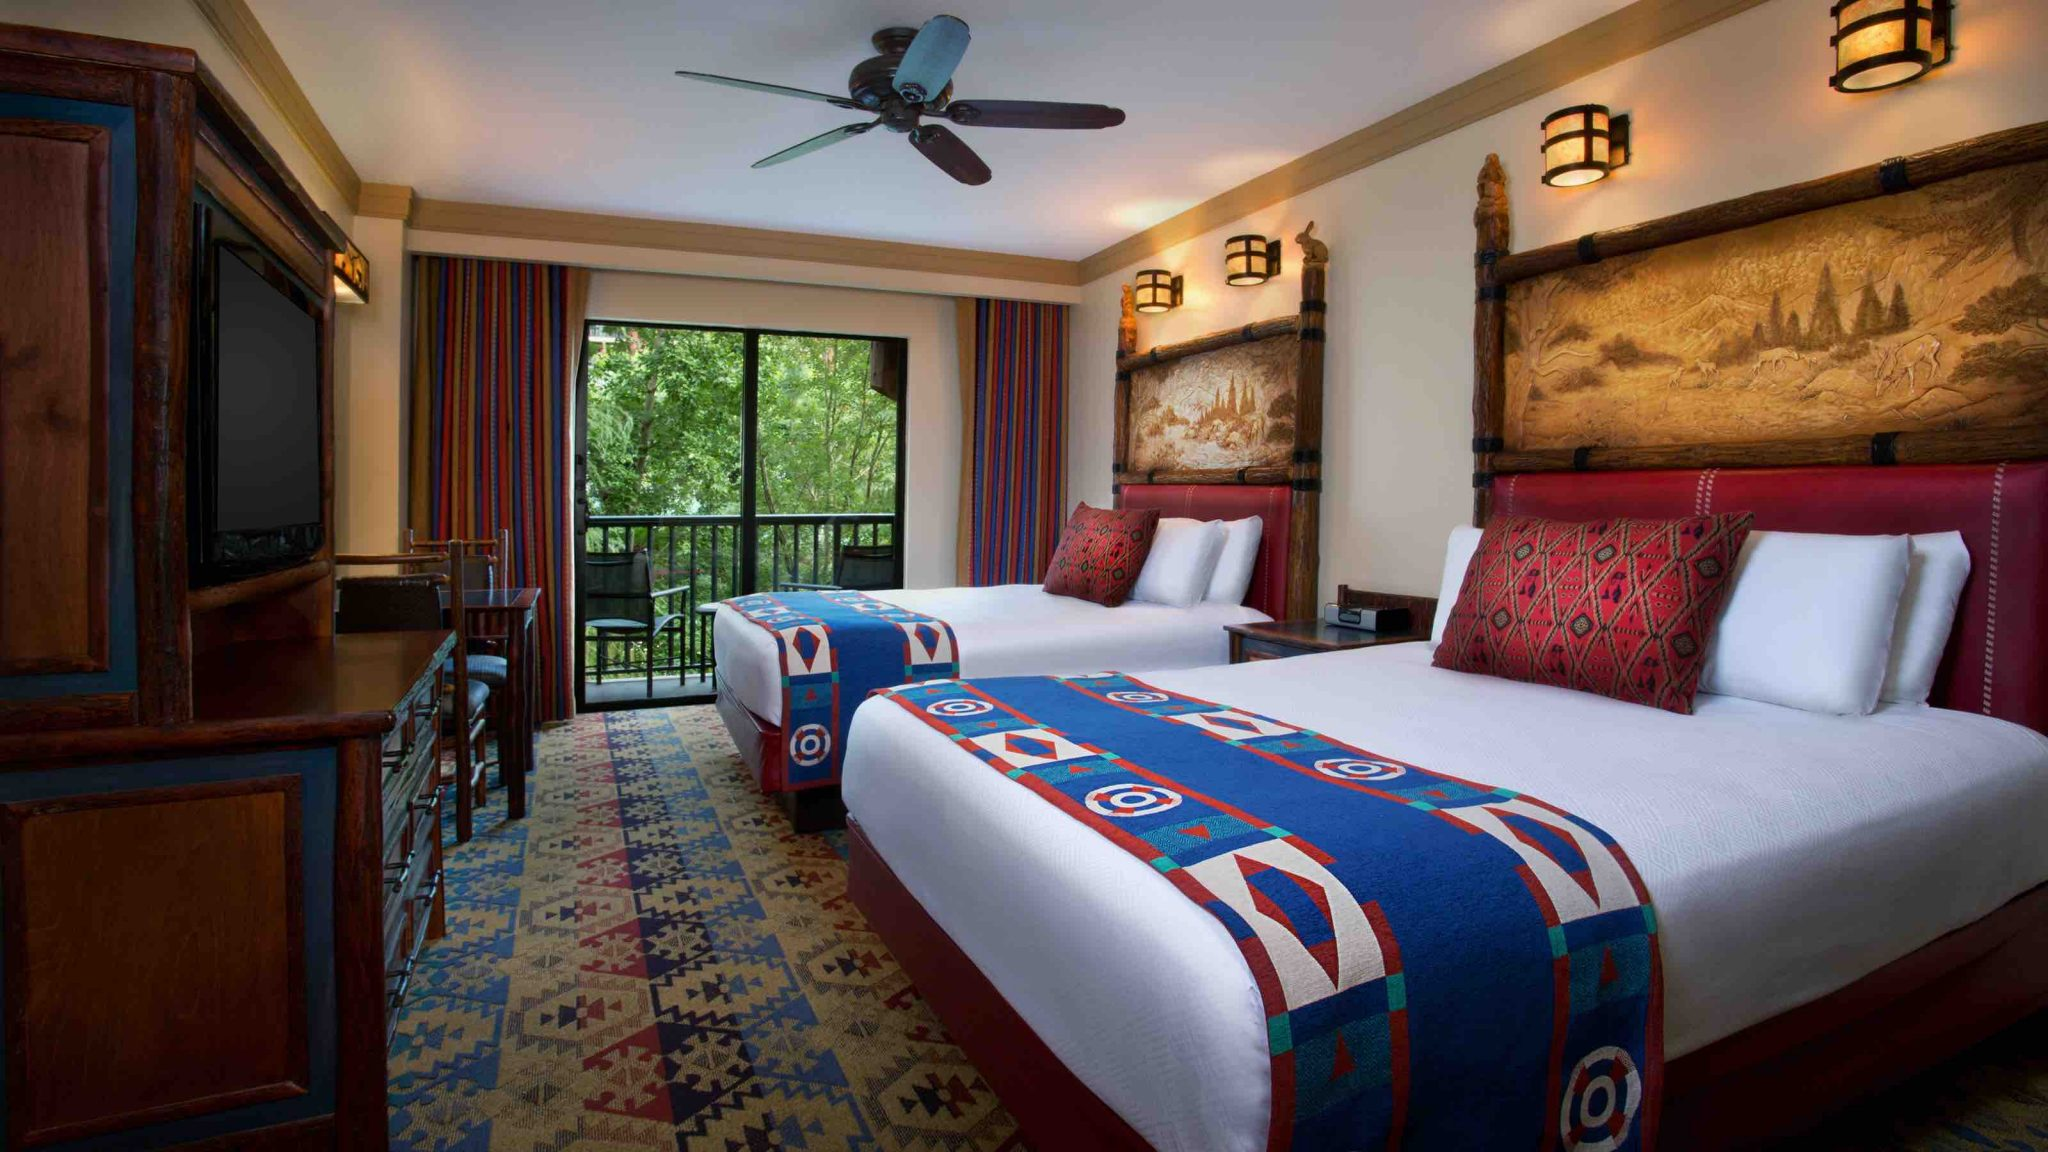 Walt Disney World Hotel for Every Budget featured by top US Disney blogger, Marcie and the Mouse:Inspired by turn-of-the-century national park lodges, Disney's Wilderness Lodge combines rustic charm with a contemporary flair on the shore of Bay Lake at Walt Disney World Resort. The 727-room hideaway features a spectacular six-story lobby, replete with teepee-topped chandeliers, totem poles, an 82-foot-tall stone fireplace and a bubbling hot spring that expands outside the building into a roaring waterfall. Walt Disney World Resort is located in Lake Buena Vista, Fla. (Disney)